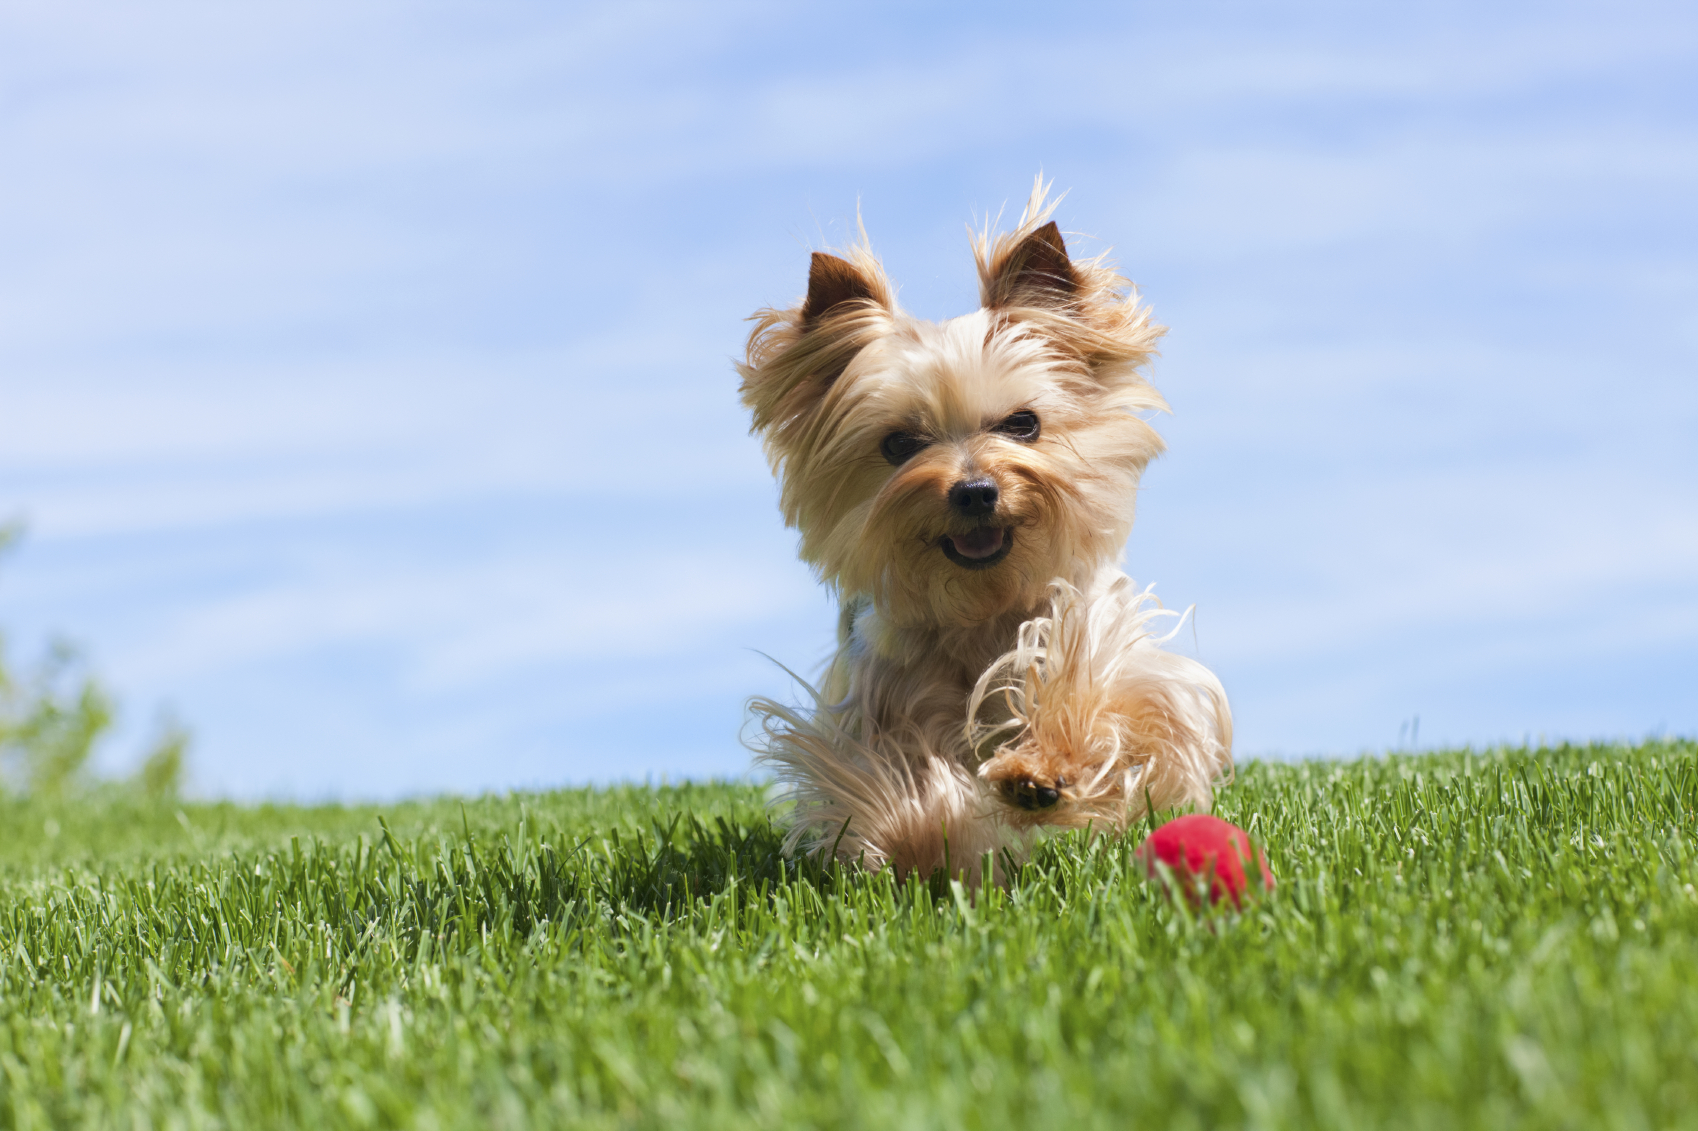 Yorkshire Terrier Dog Running Outdoors